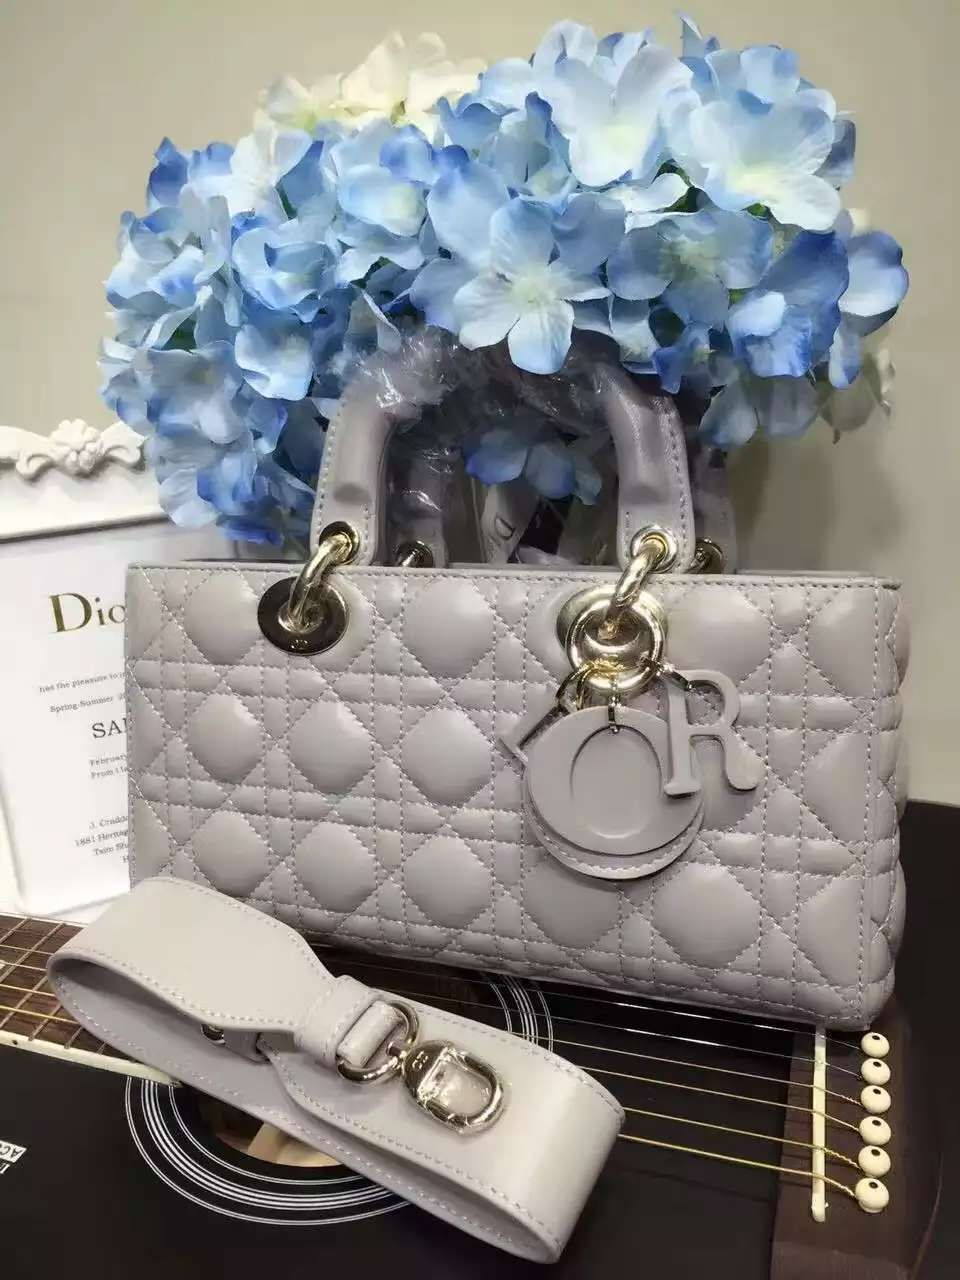 dior Bag, ID : 64305(FORSALE:a@yybags.com), dior handbag designers, dior attache case, dior travelpack, dior womens wallet, dior cheap handbags online, dior usa bag, dior shopping handbags, dior ladies designer handbags, dior designer evening bags, dior designer handbags for sale, dior backpack purse, dior for sale, dior backpack for laptop #diorBag #dior #dior #backpack #travel